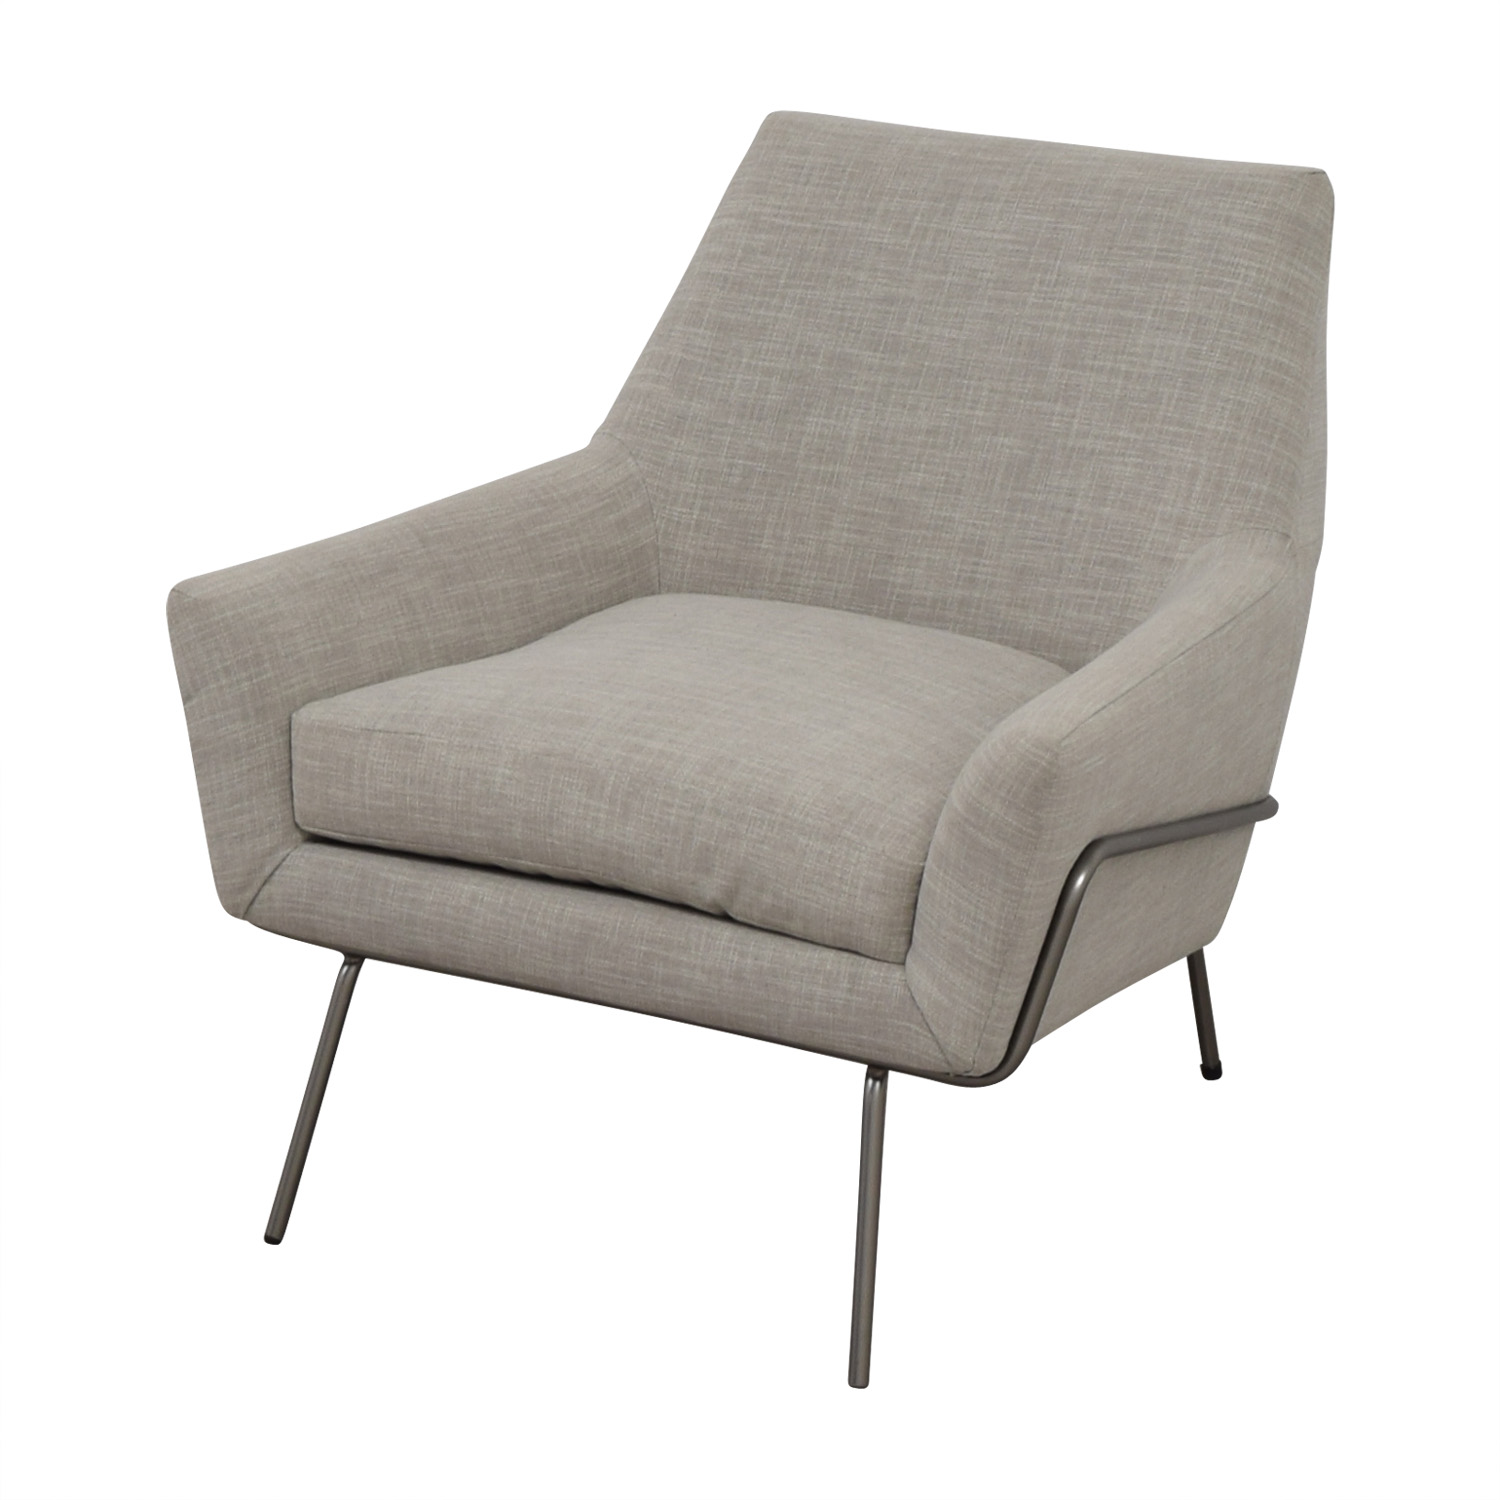 West Elm West Elm Lucas Grey Wire Base Chair coupon